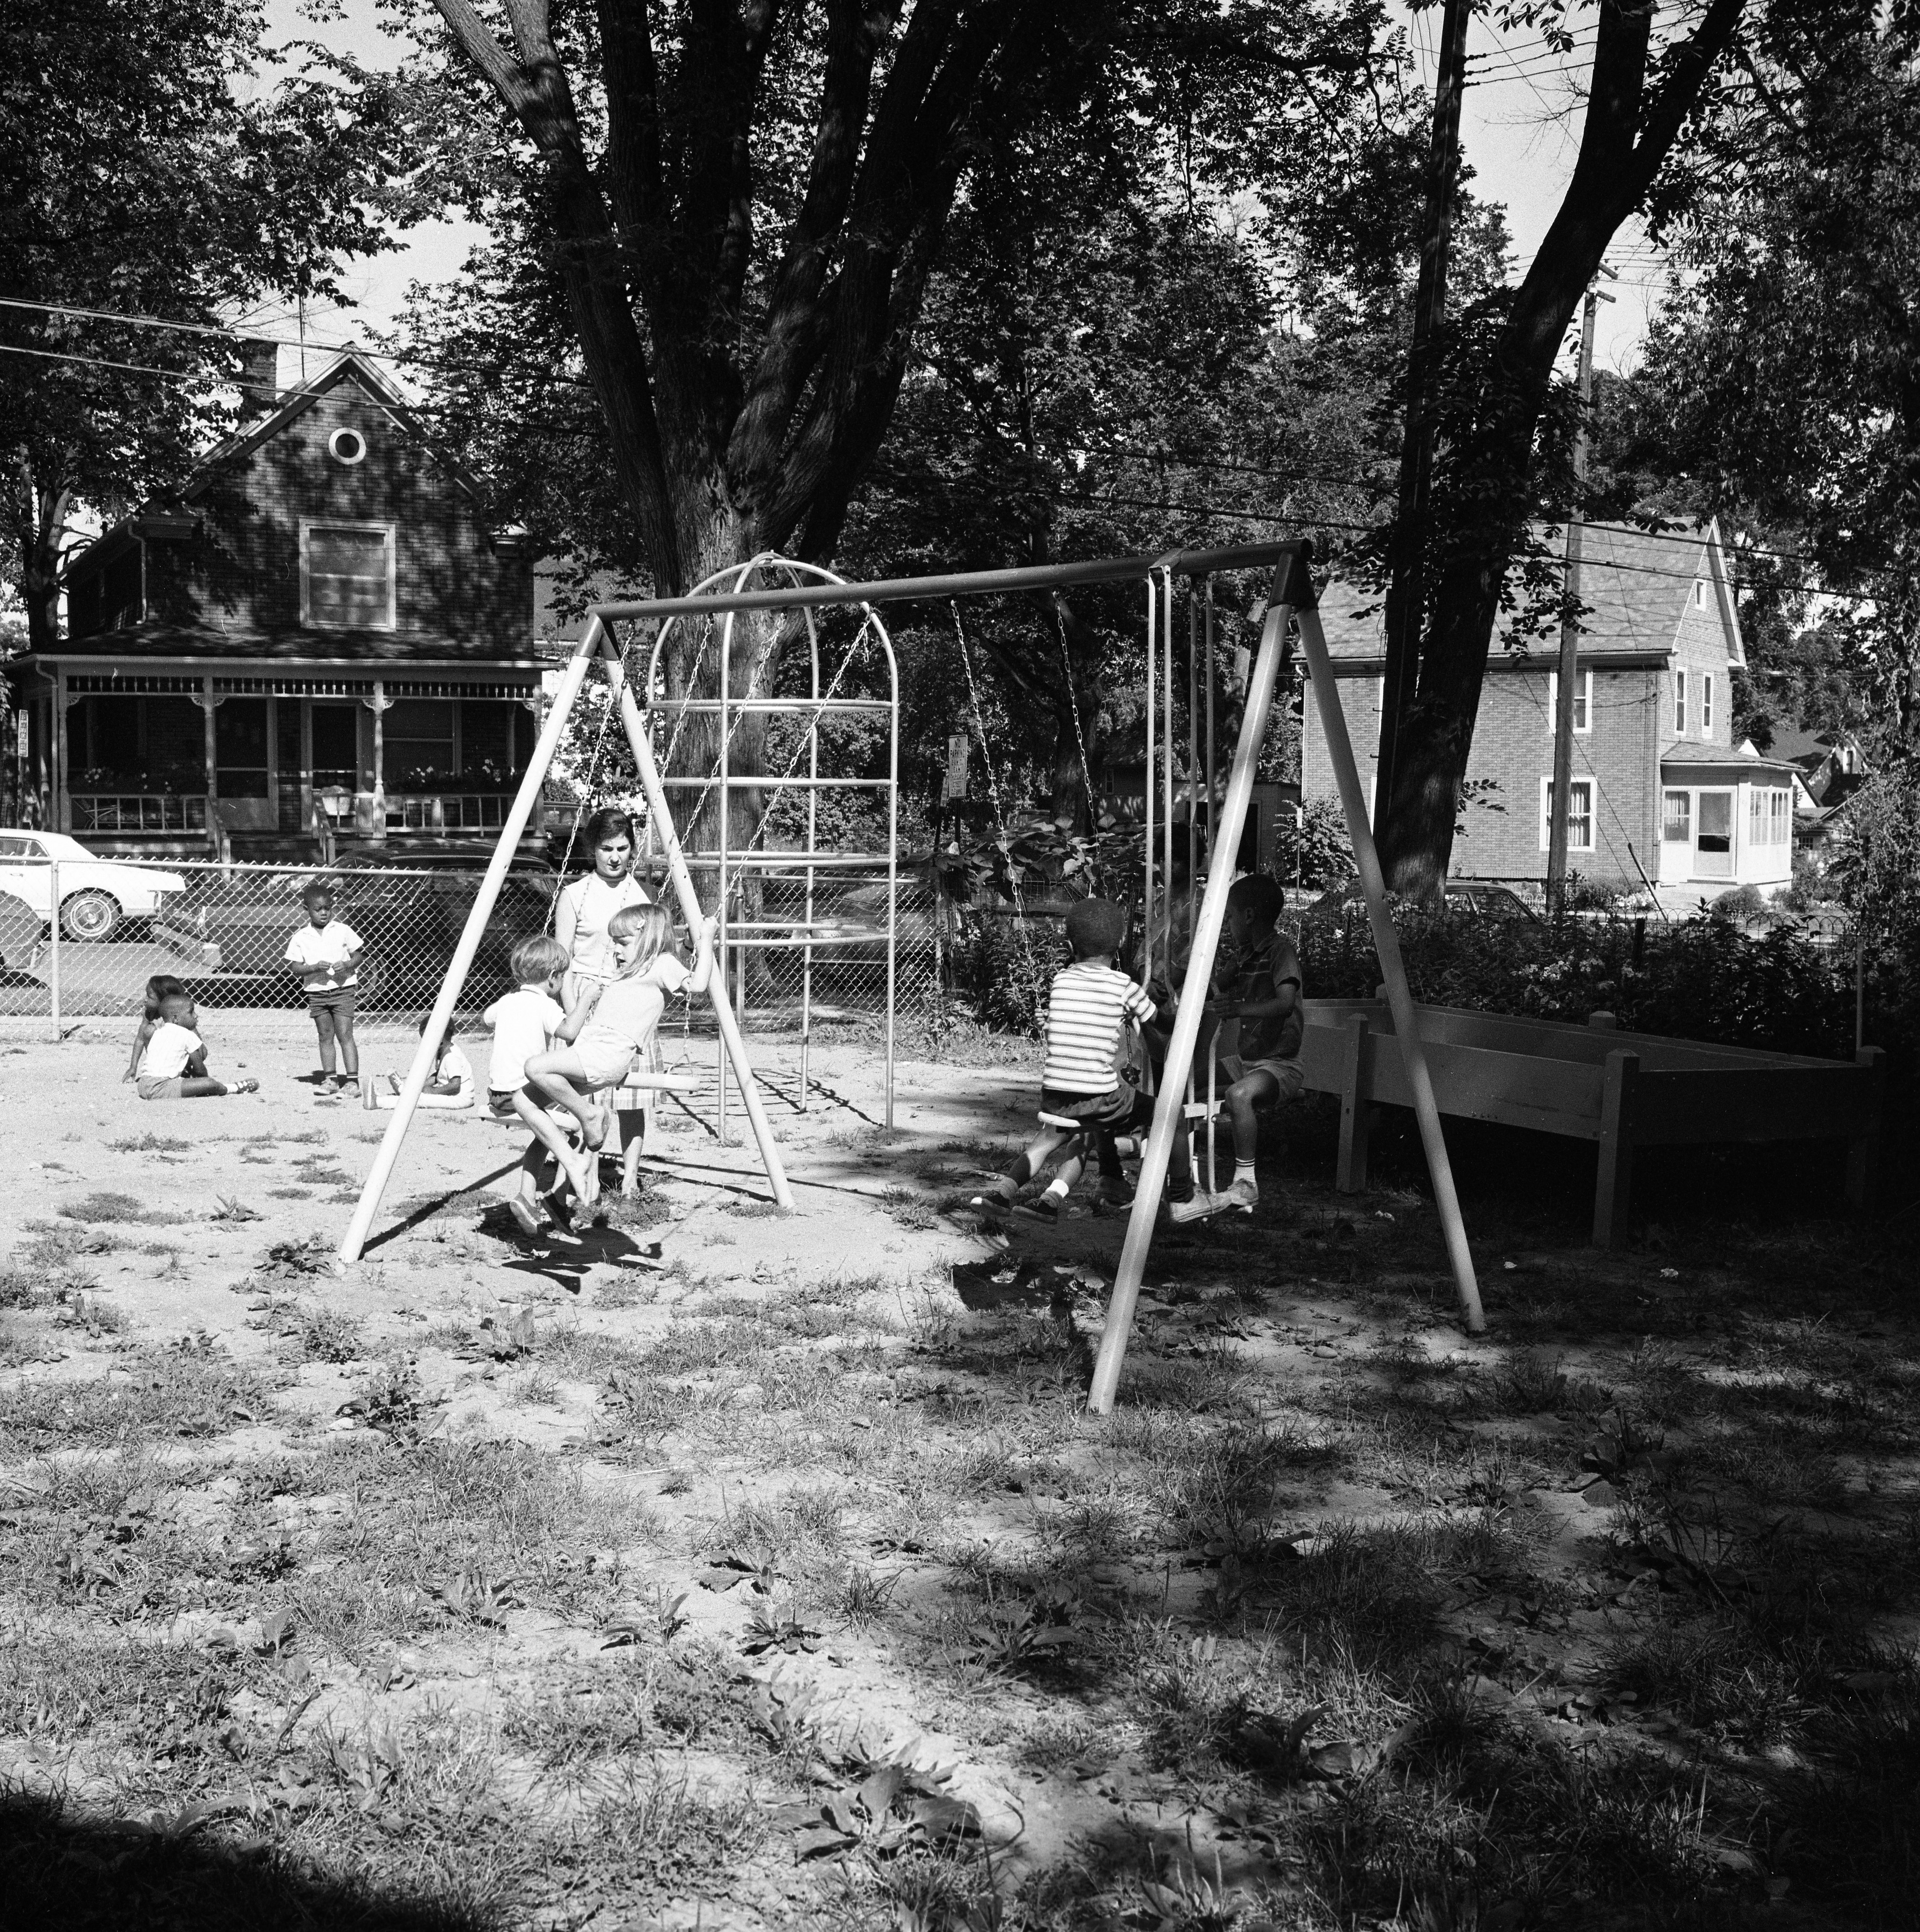 Kiwanis Club of Ann Arbor Donates Playground Equipment to Second Baptist Church Day Care Center, August 1967 image